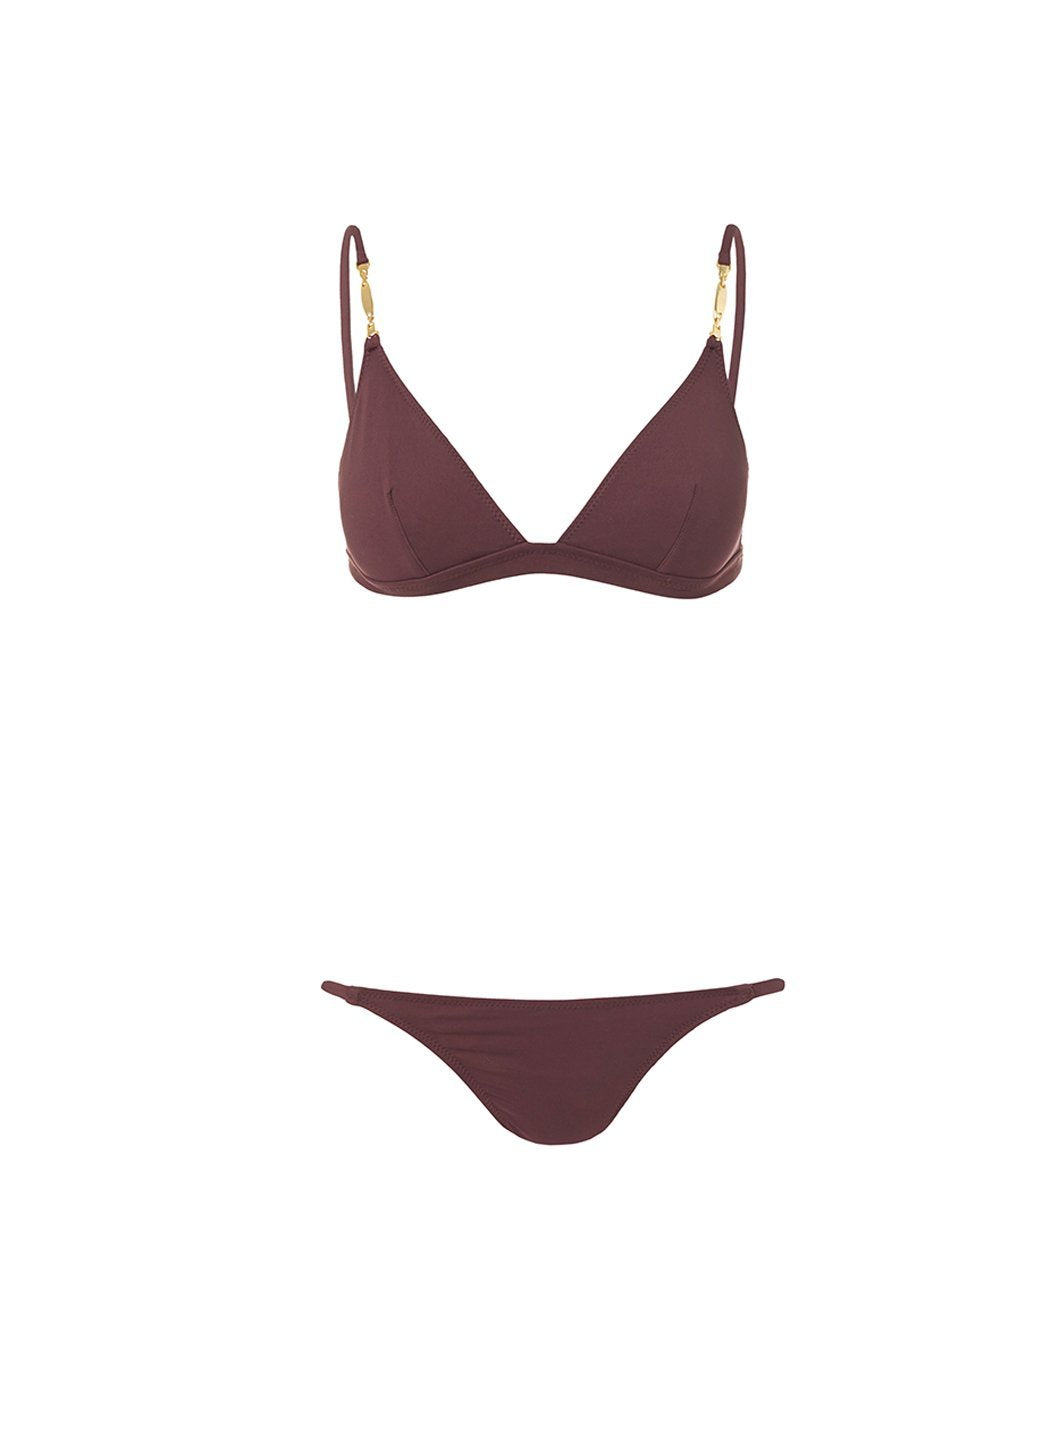 mexico walnut bralette goldlink bikini 2019